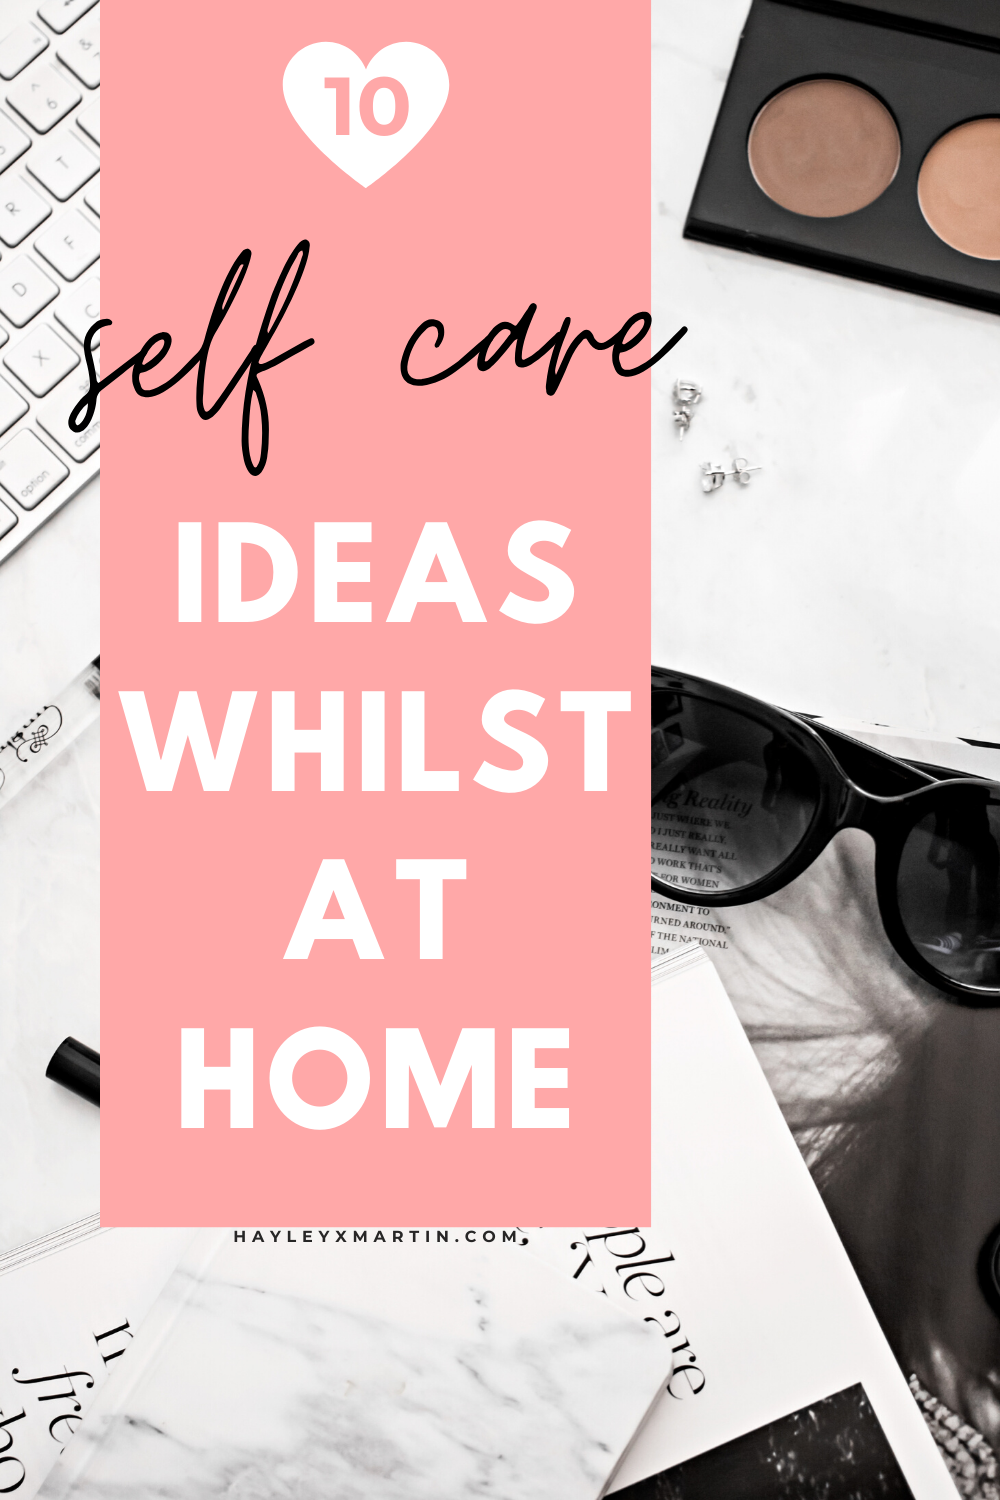 10 SELF-CARE IDEAS WHILST AT HOME | HAYLEYXMARTIN